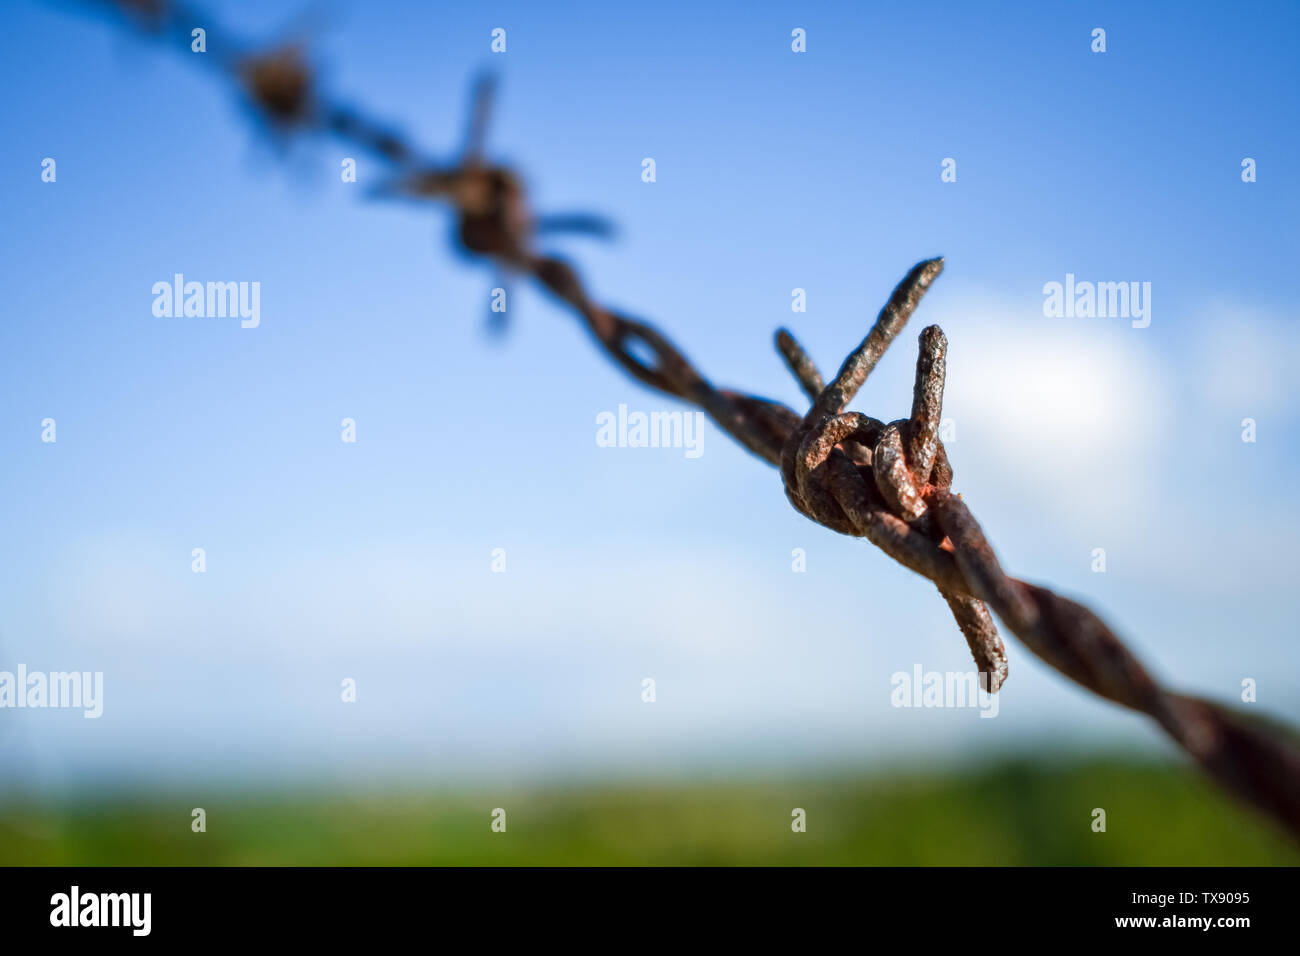 Freedom concept. Wire fence on a background of blue sky and green field - Stock Image